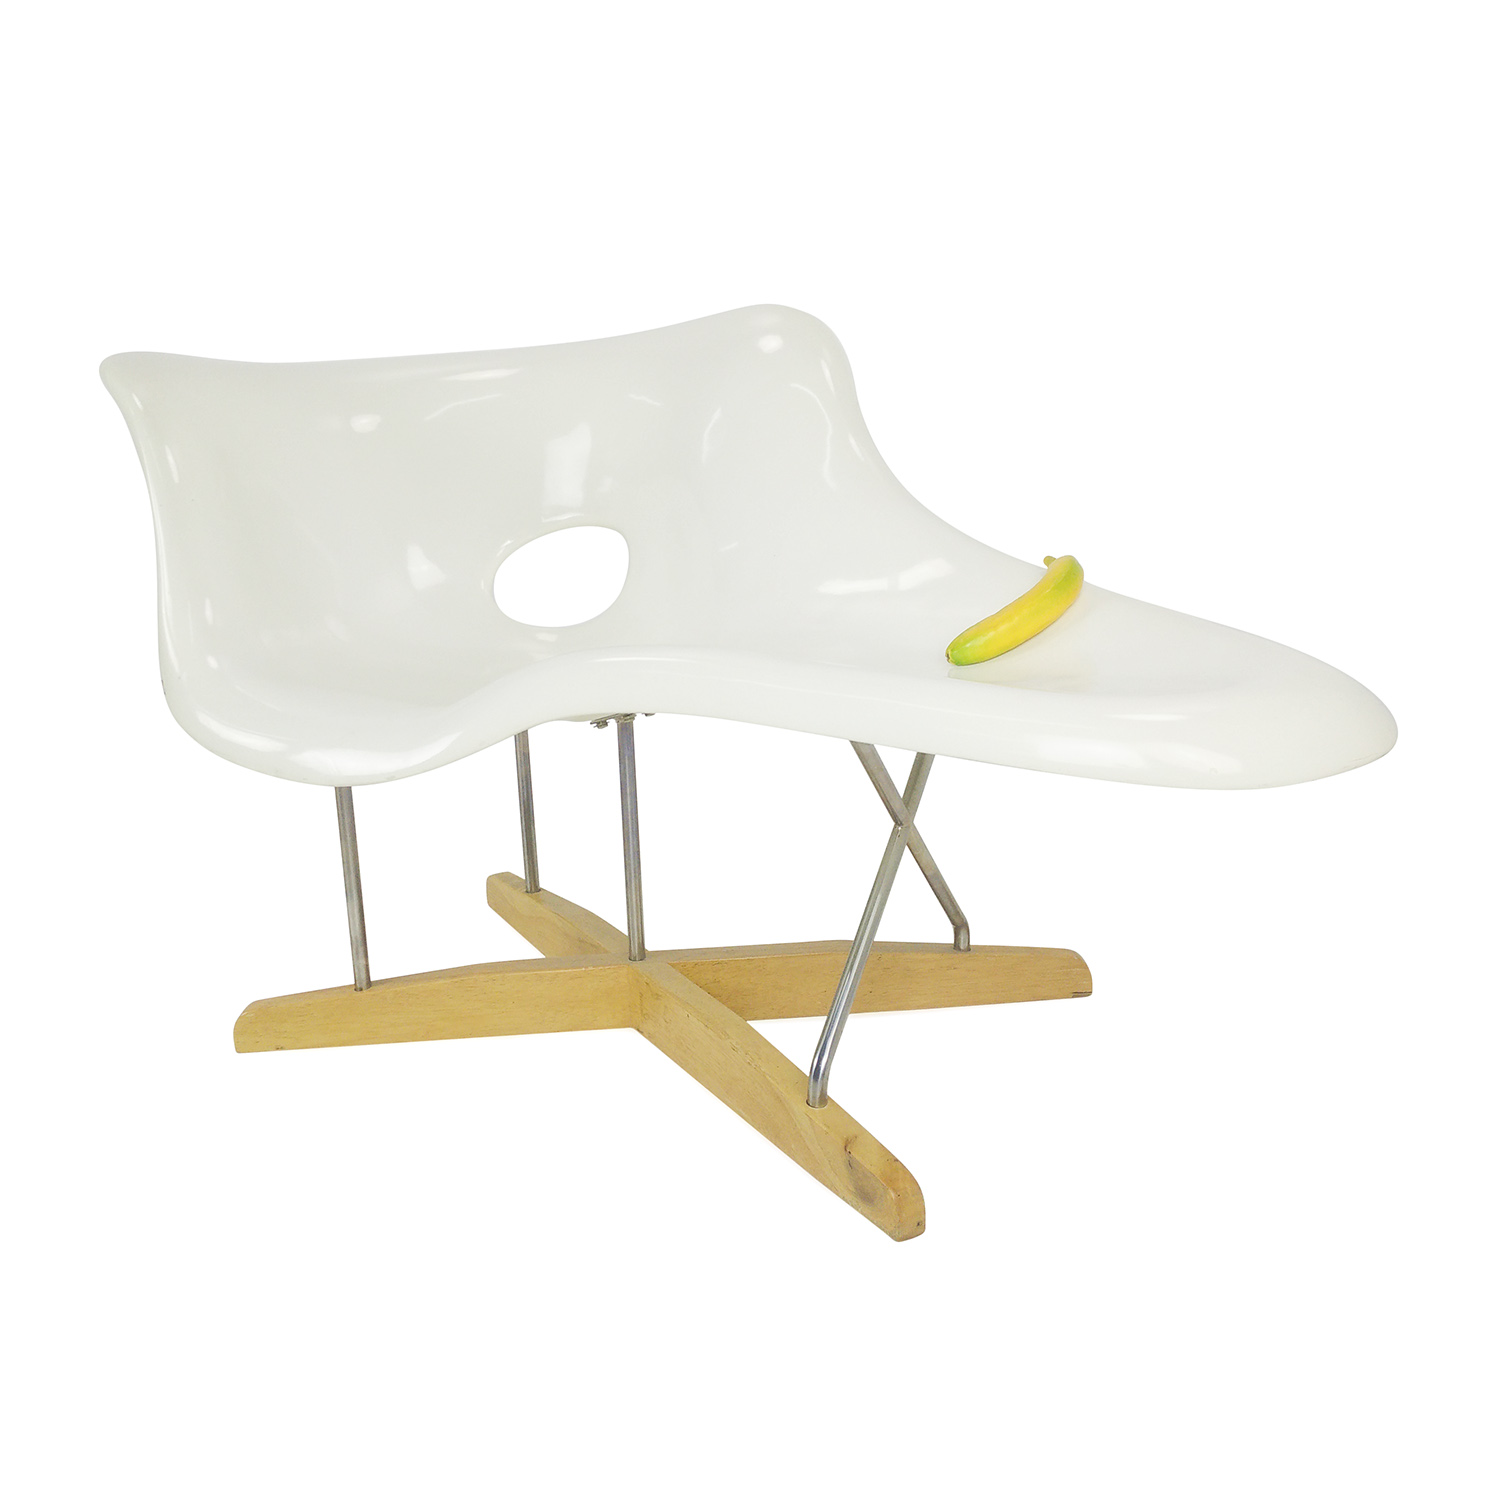 63 off eames replica of la chaise la chaise replica for Imitation chaise eames